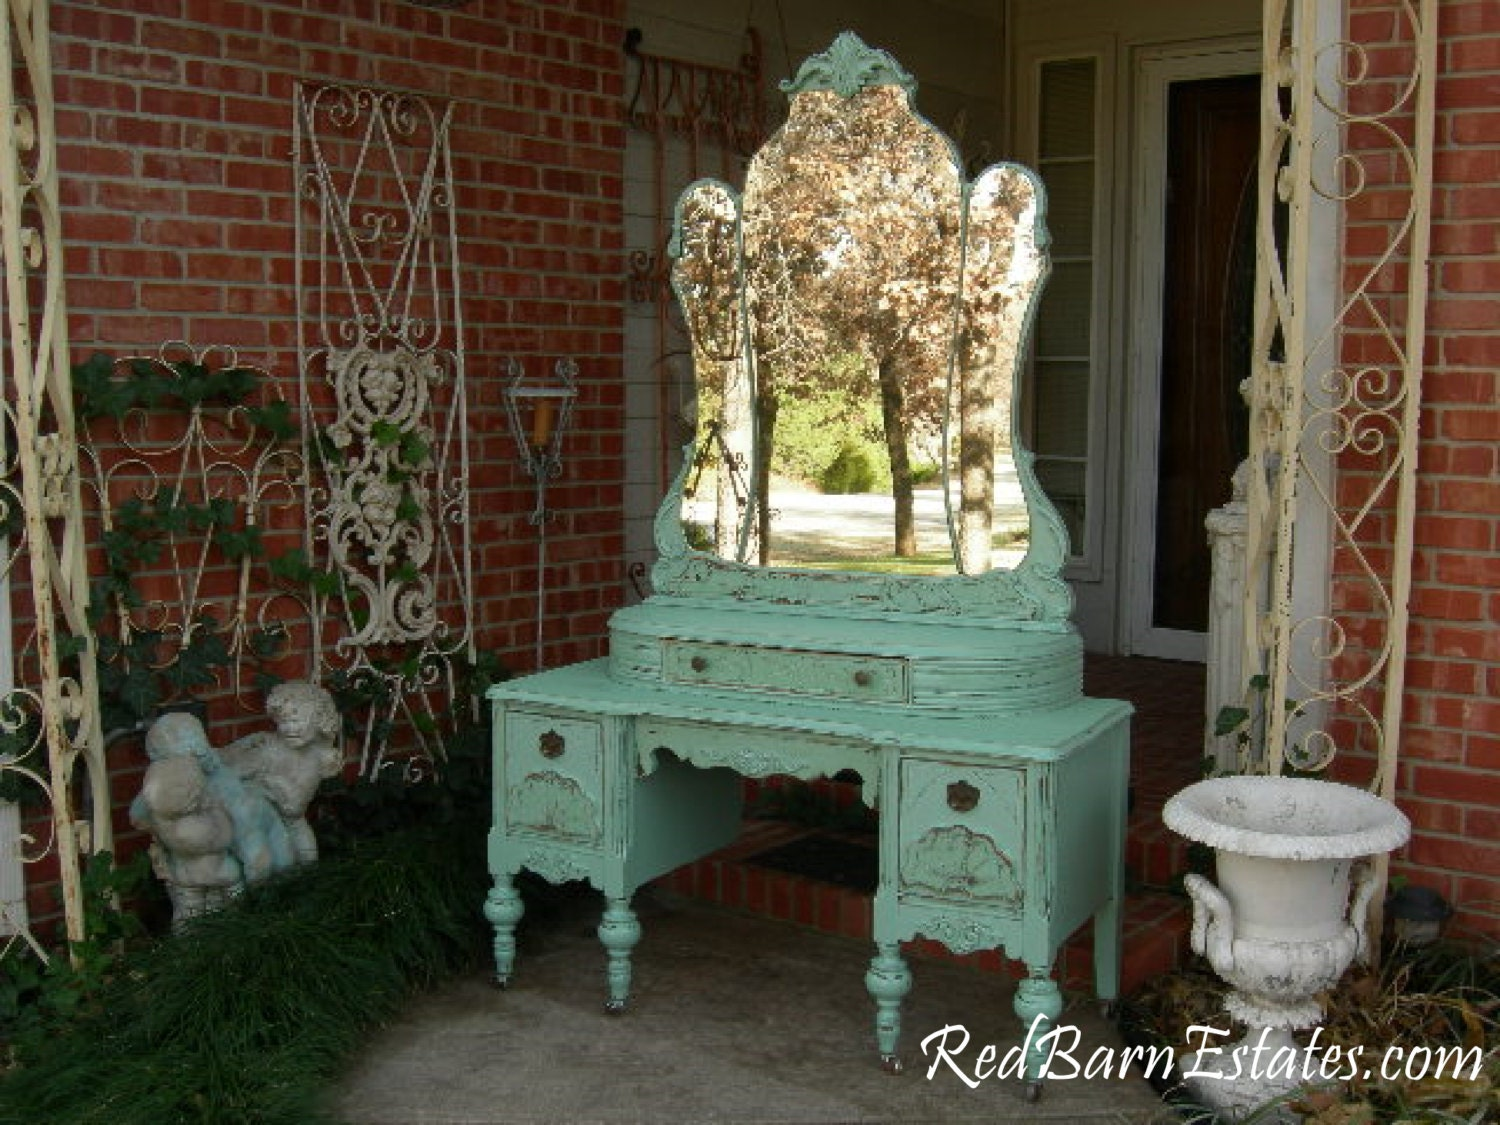 vanity custom order an antique dresser shabby chic painted distressed restored bedroom bathroom furniture breathtaking - Bathroom Cabinets Shabby Chic